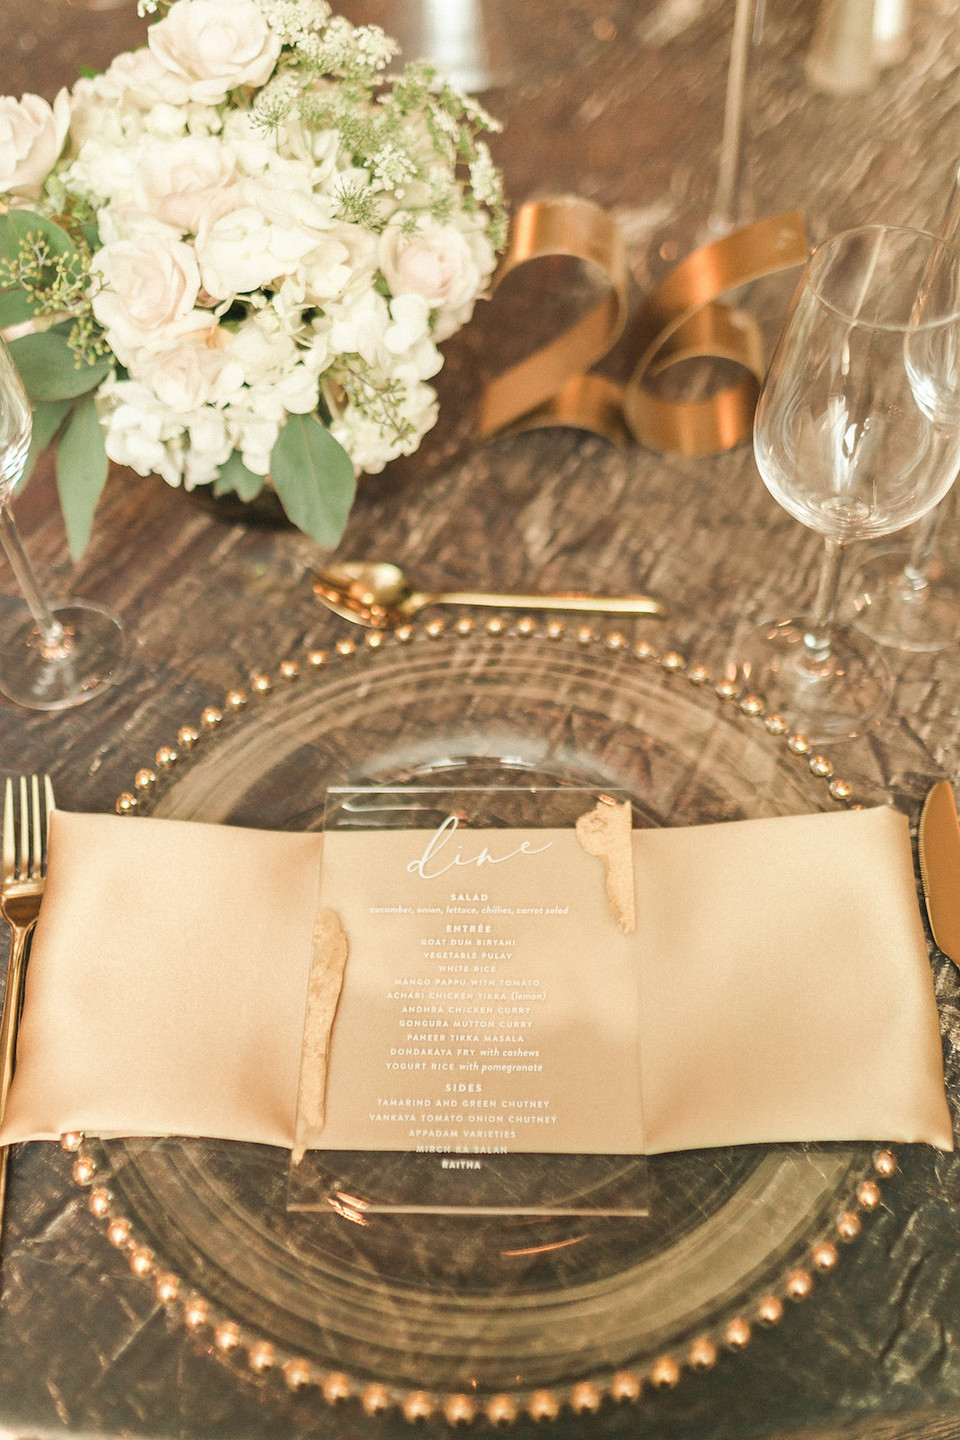 Acrylic and Gold Foil Wedding Menu Modern Wedding Decor CG & Co Events